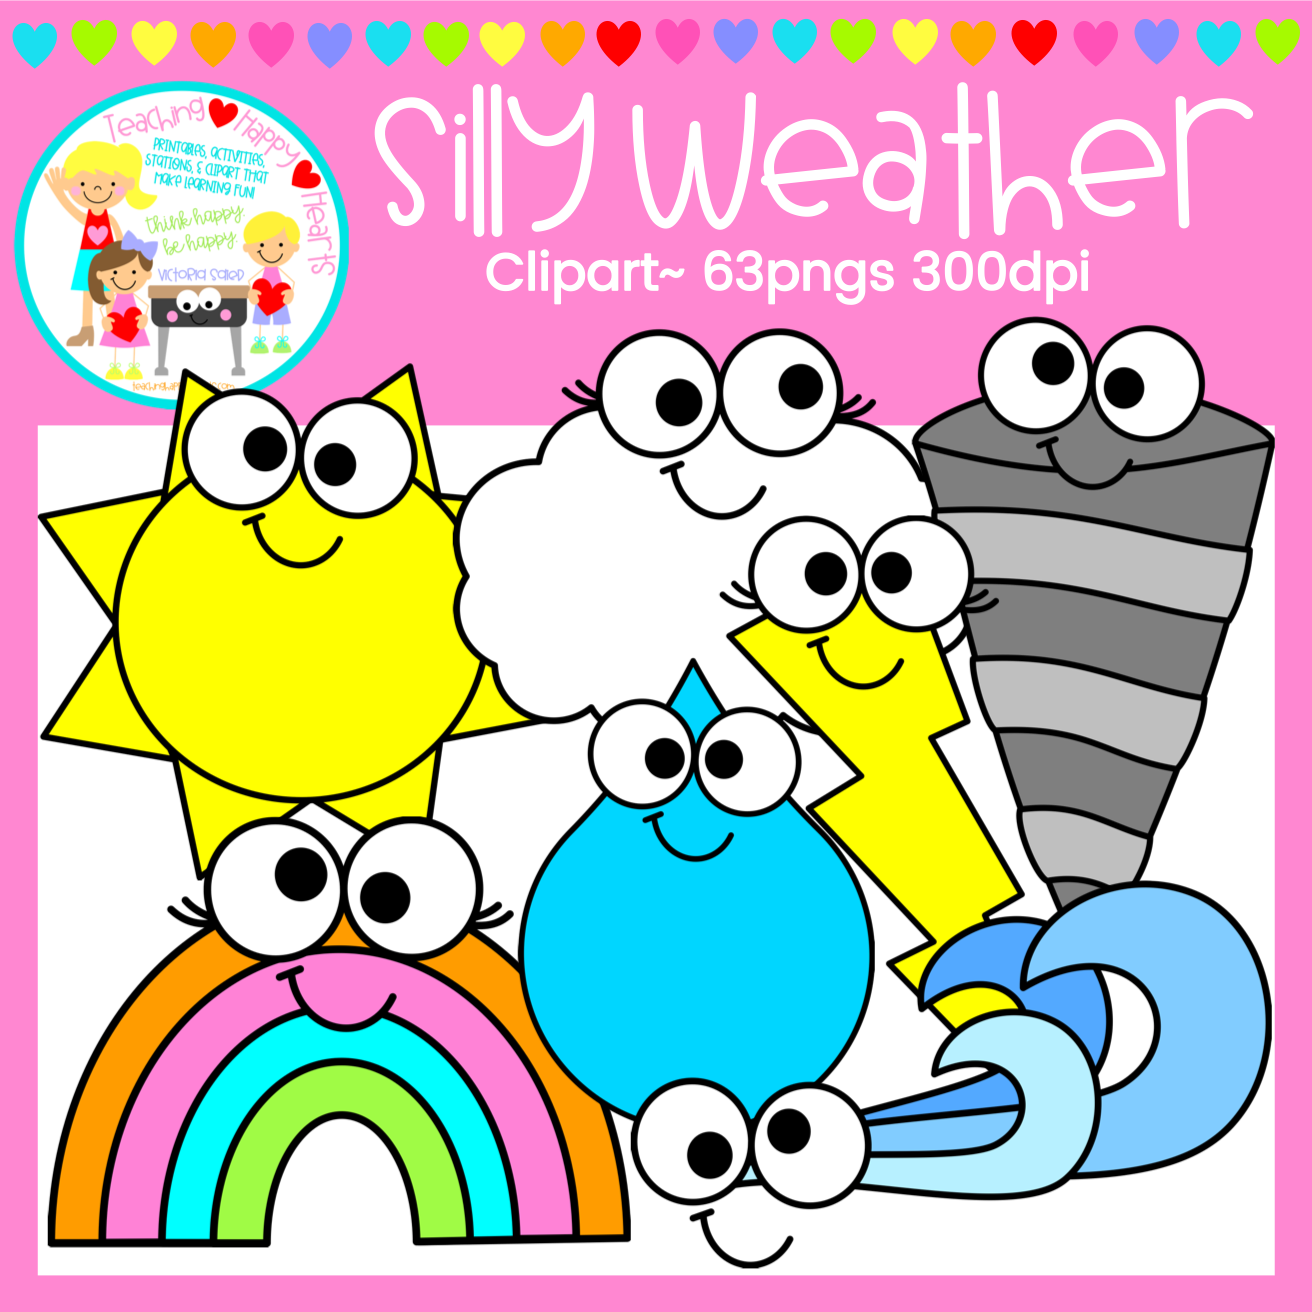 Silly Weather Clipart.